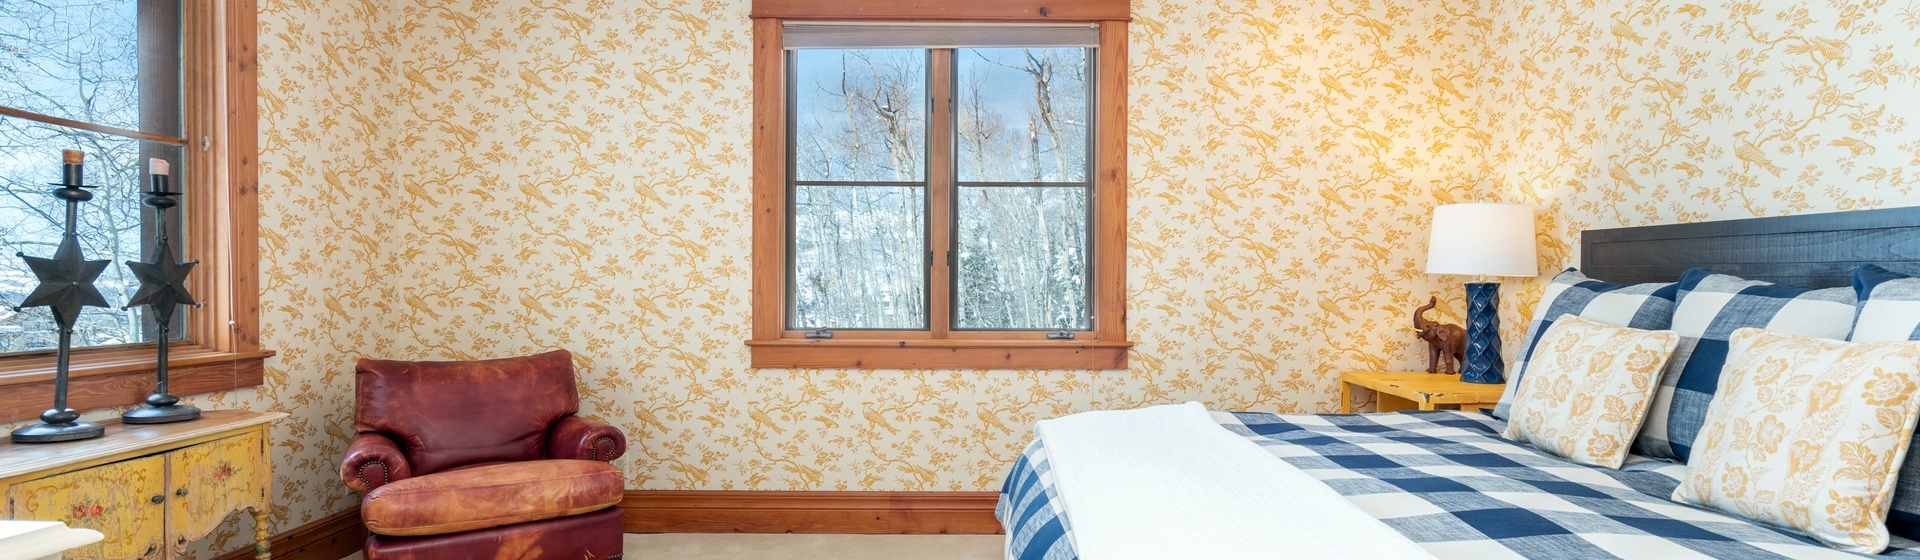 20-MountainVillage-Positive-Outlook-Downstairs-King-Guest-Bedroom-Web.jpg